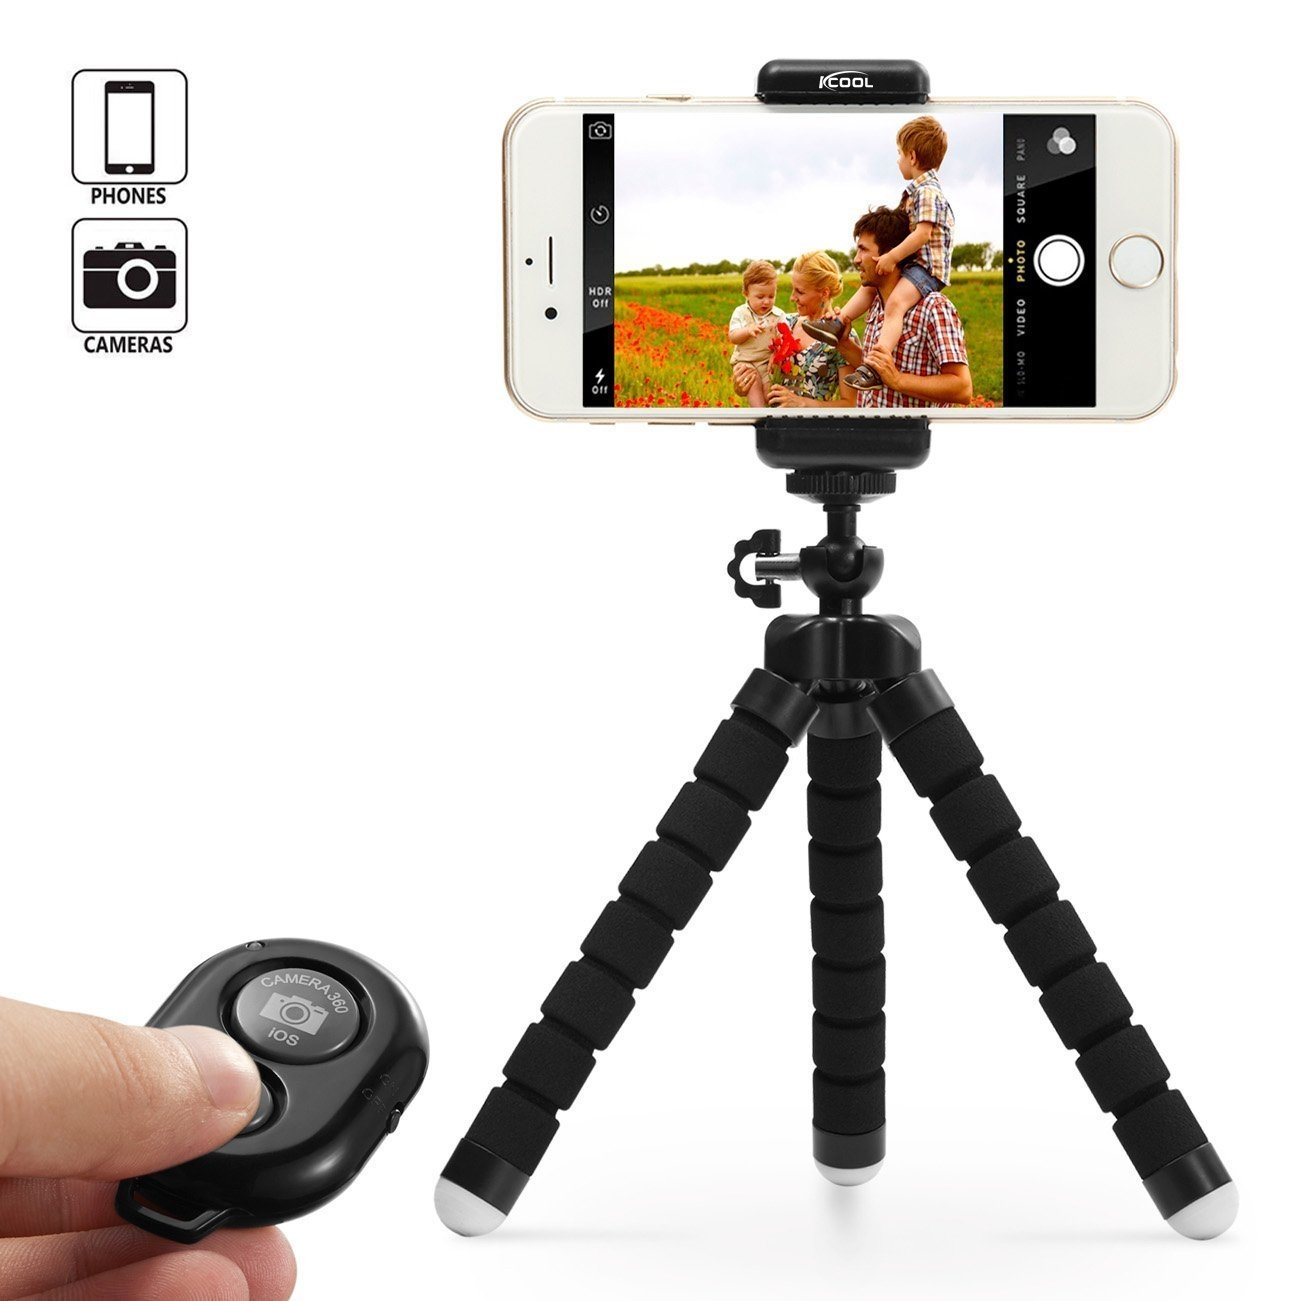 bc6876f44d7bc4f4b528dbffd658d65c Octopus Tripod Stand Holder Universal Clip & Remote For Smartphones & Camera   Black price on jumia